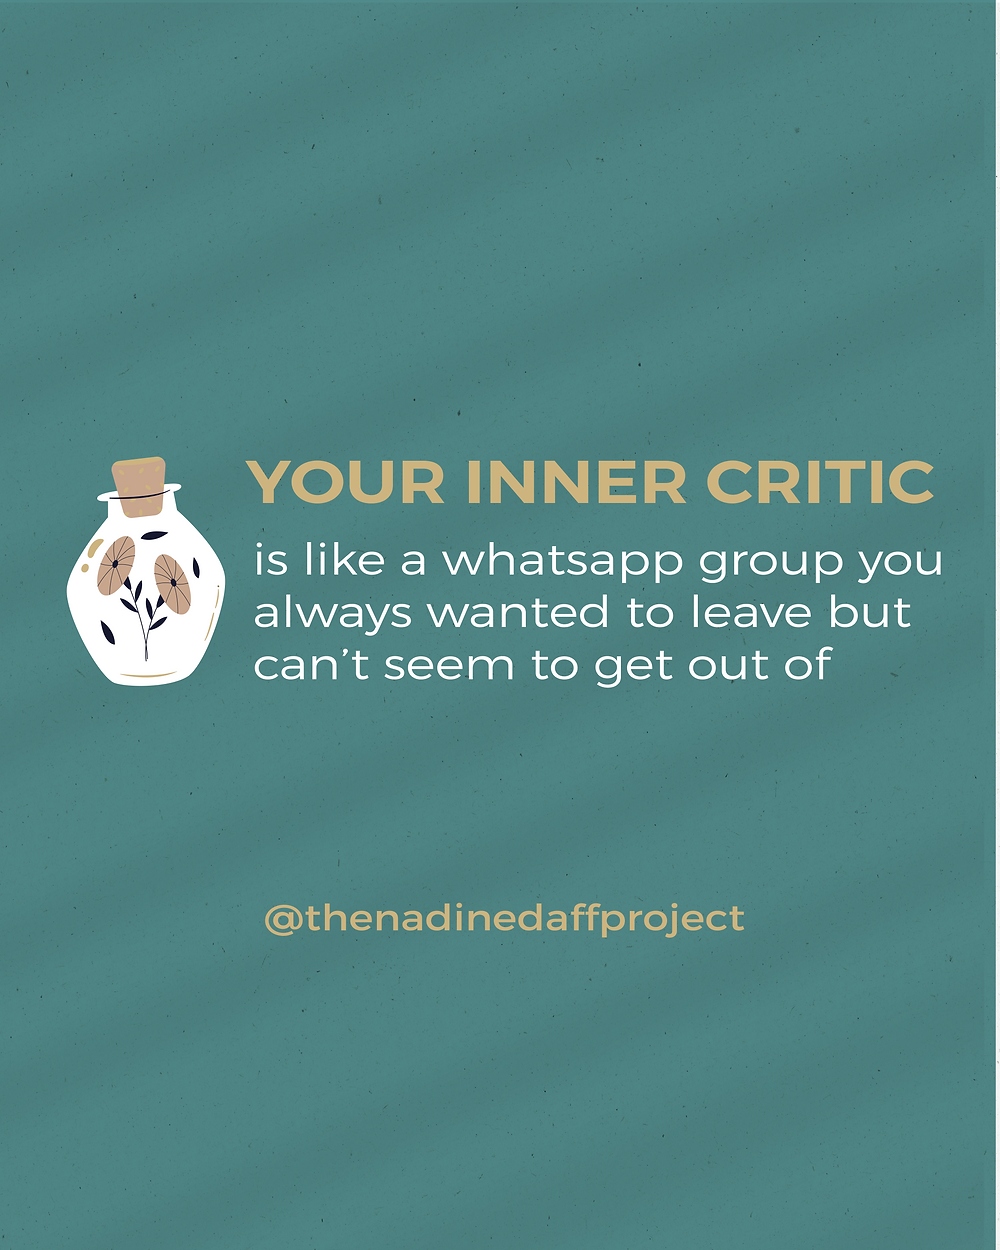 Inner critic graphic